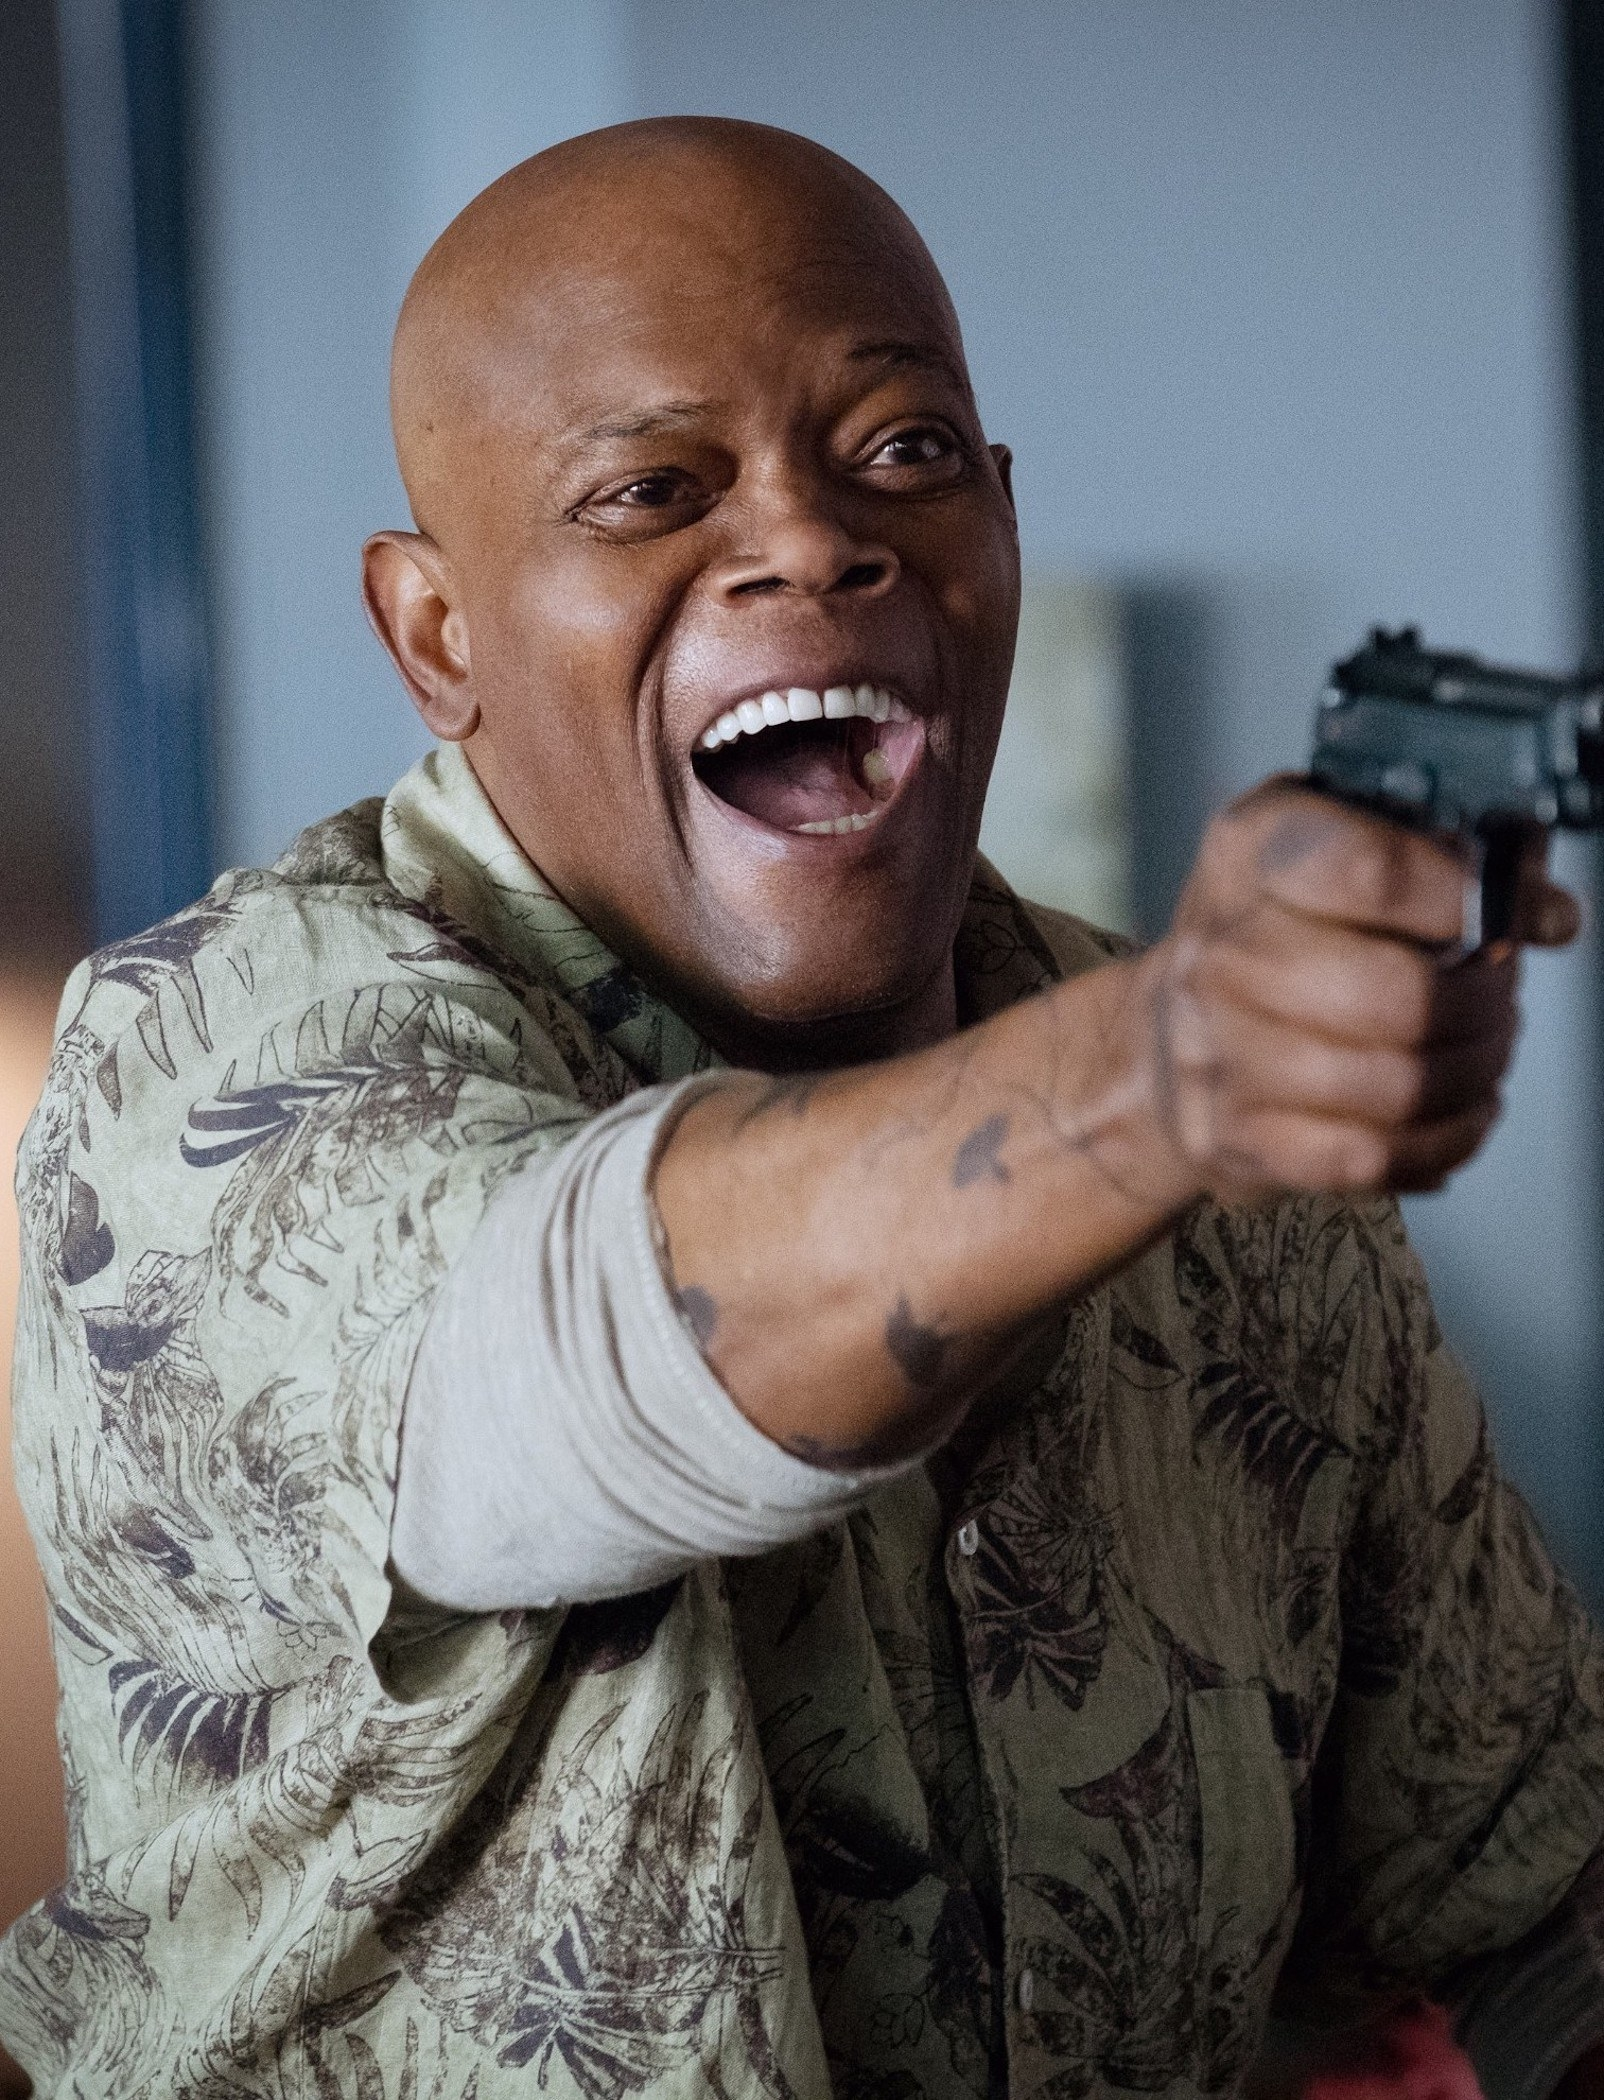 Samuel L. Jackson about to shoot someone with a gun